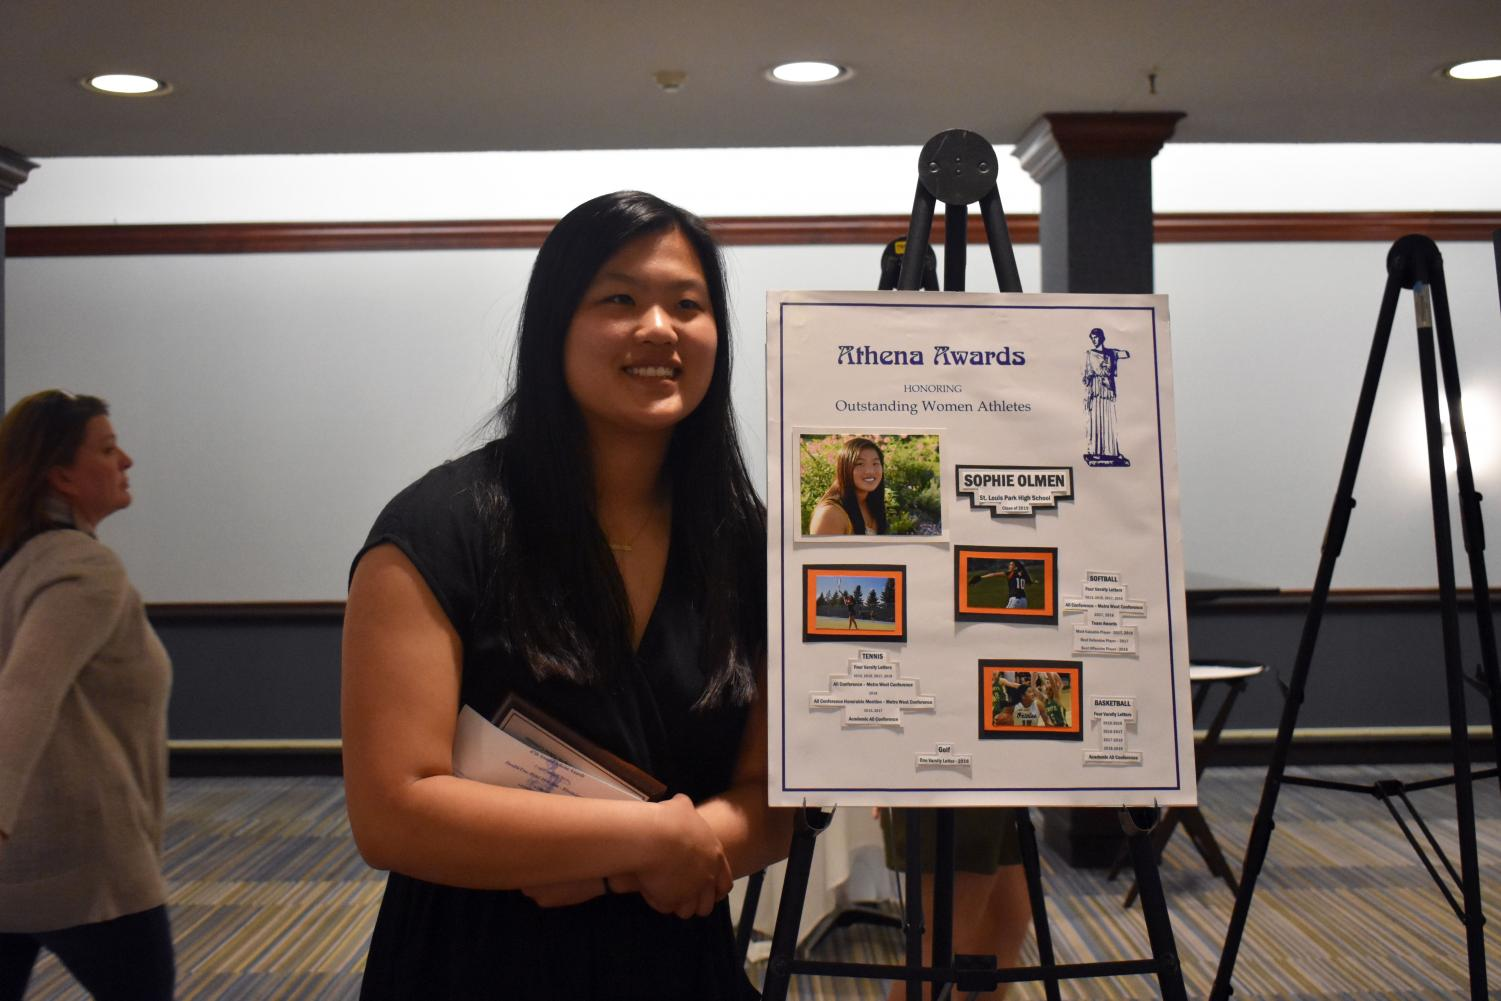 Senior Athena award recipient Sophie Olmen poses for a picture by her poster board that contains information on her athletic acheivemnets during her high school career.